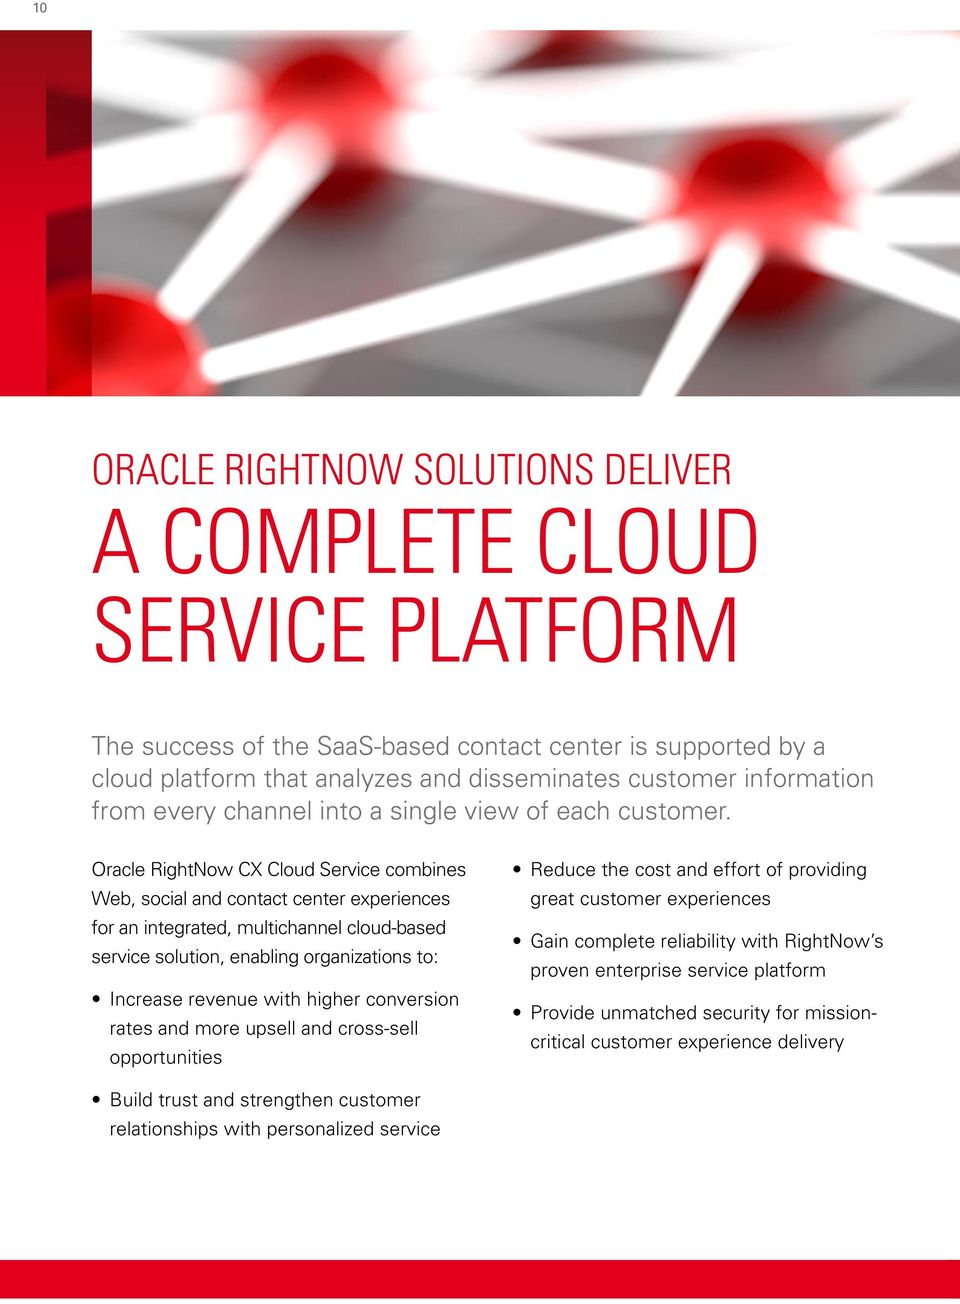 Oracle RightNow CX Cloud Service combines Web, social and contact center experiences for an integrated, multichannel cloud-based service solution, enabling organizations to: Increase revenue with